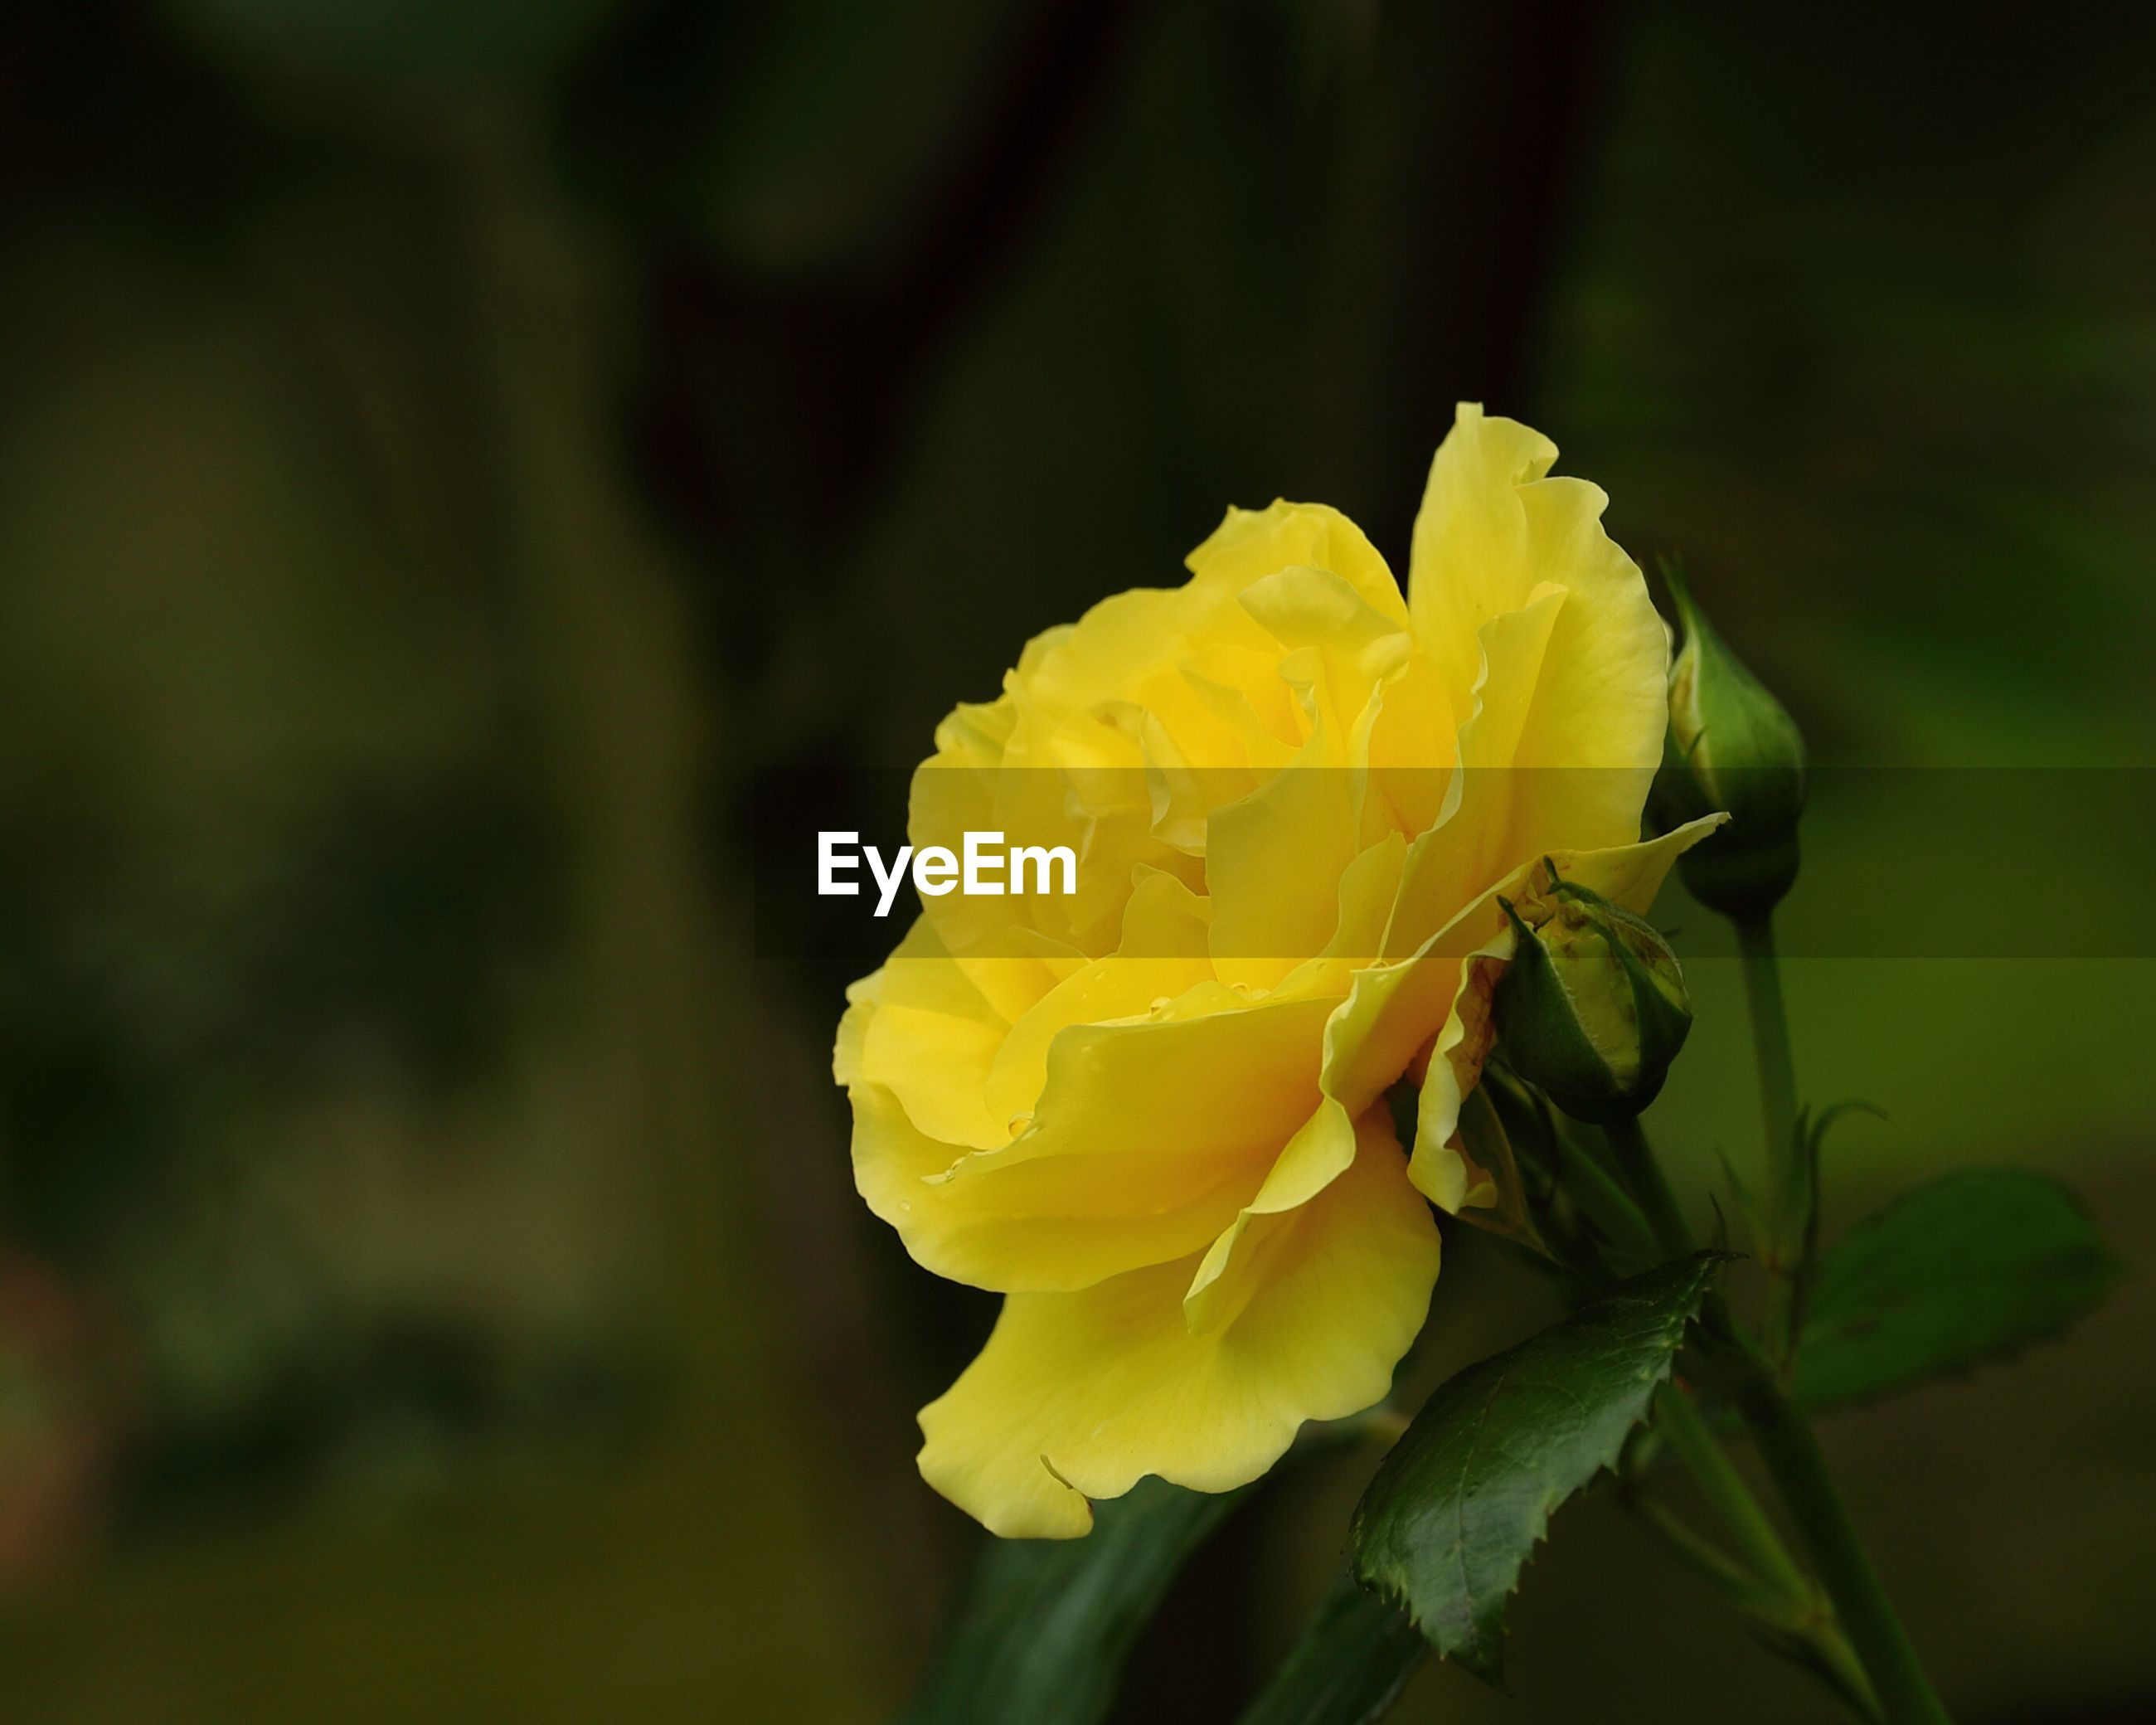 flower, yellow, petal, flower head, freshness, fragility, growth, close-up, beauty in nature, focus on foreground, single flower, nature, blooming, plant, in bloom, selective focus, botany, blossom, day, outdoors